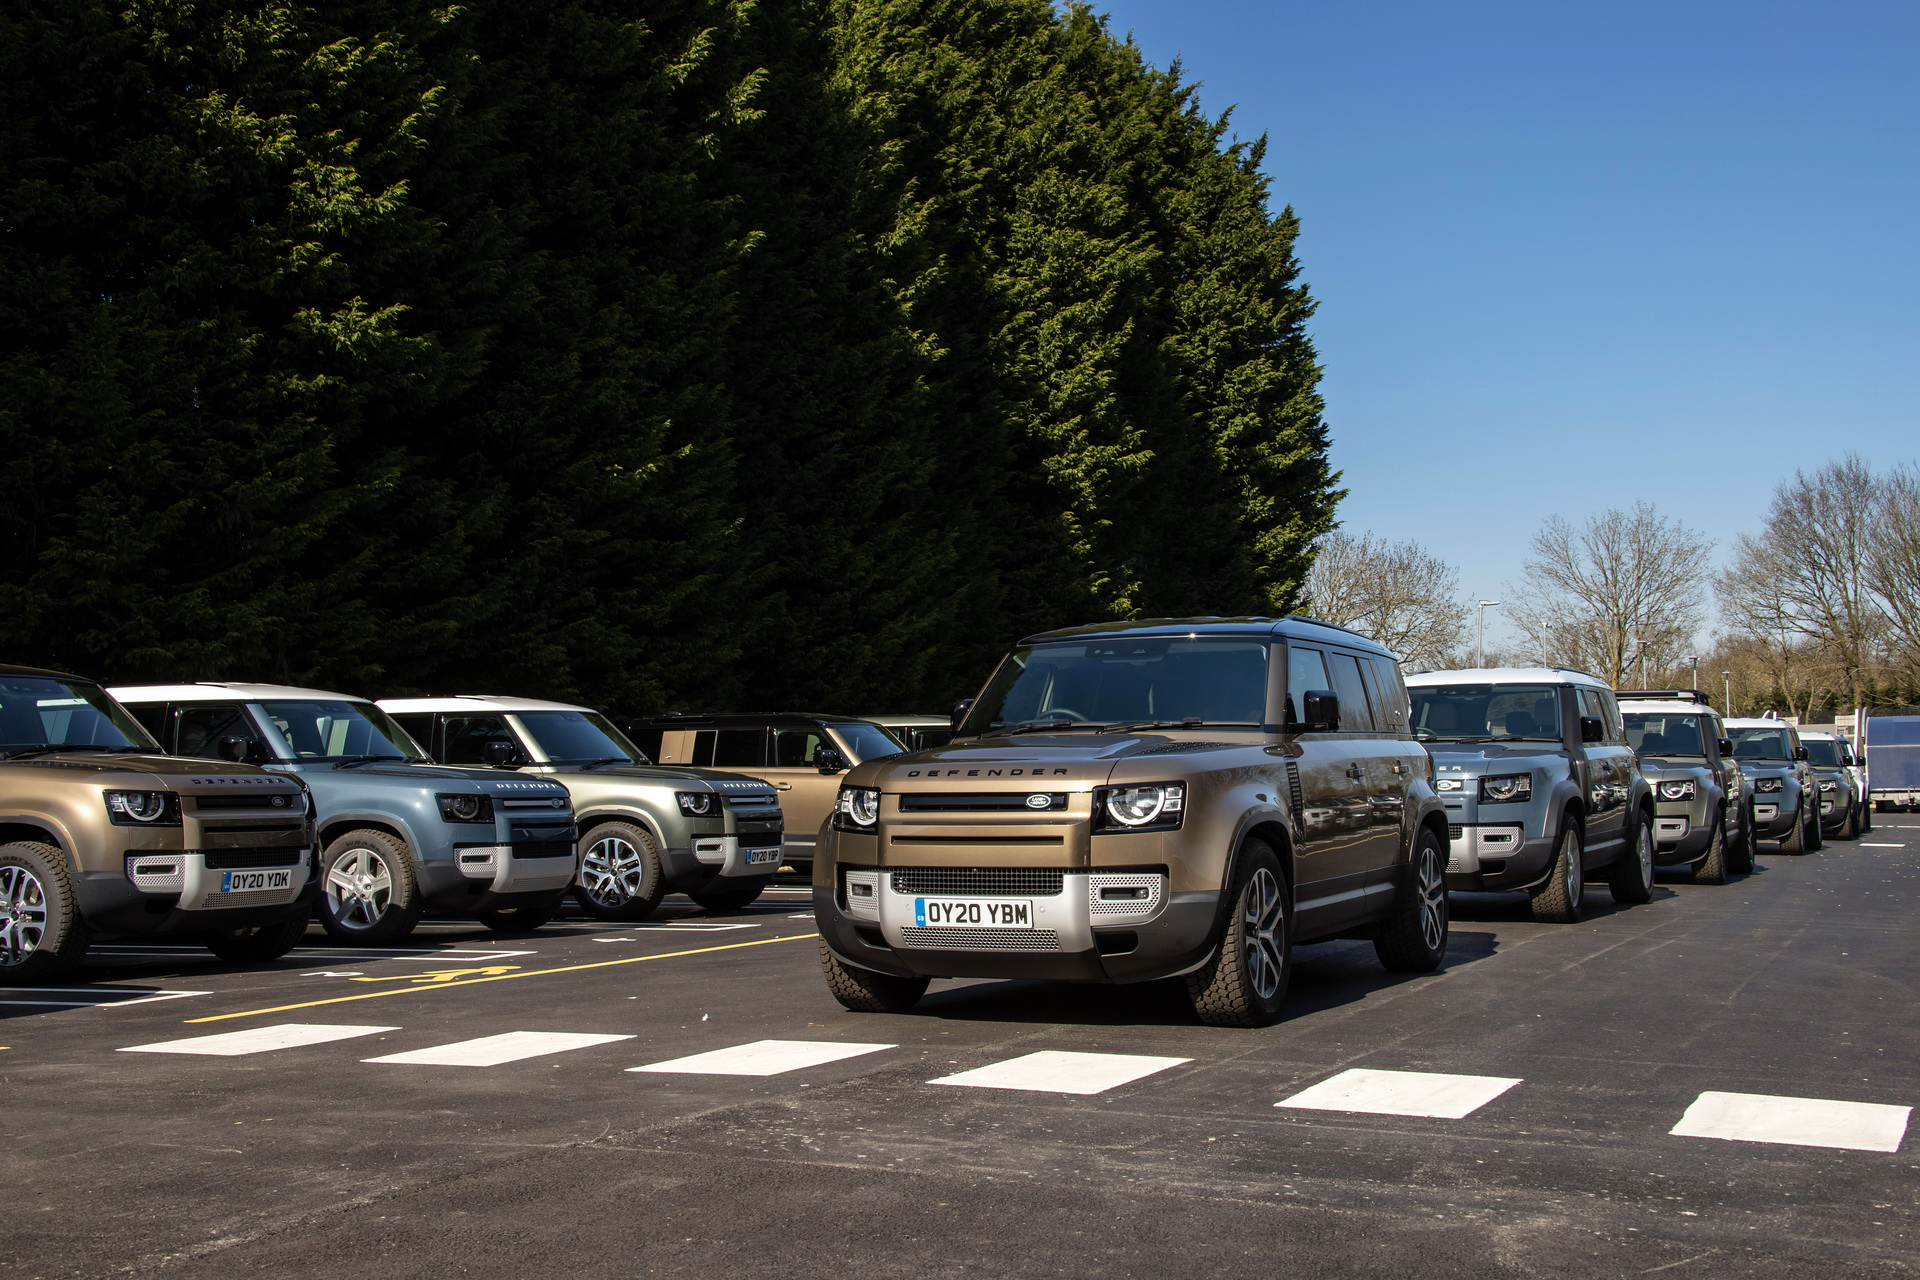 jlr-deploys-cars-to-fight-pandemic-35